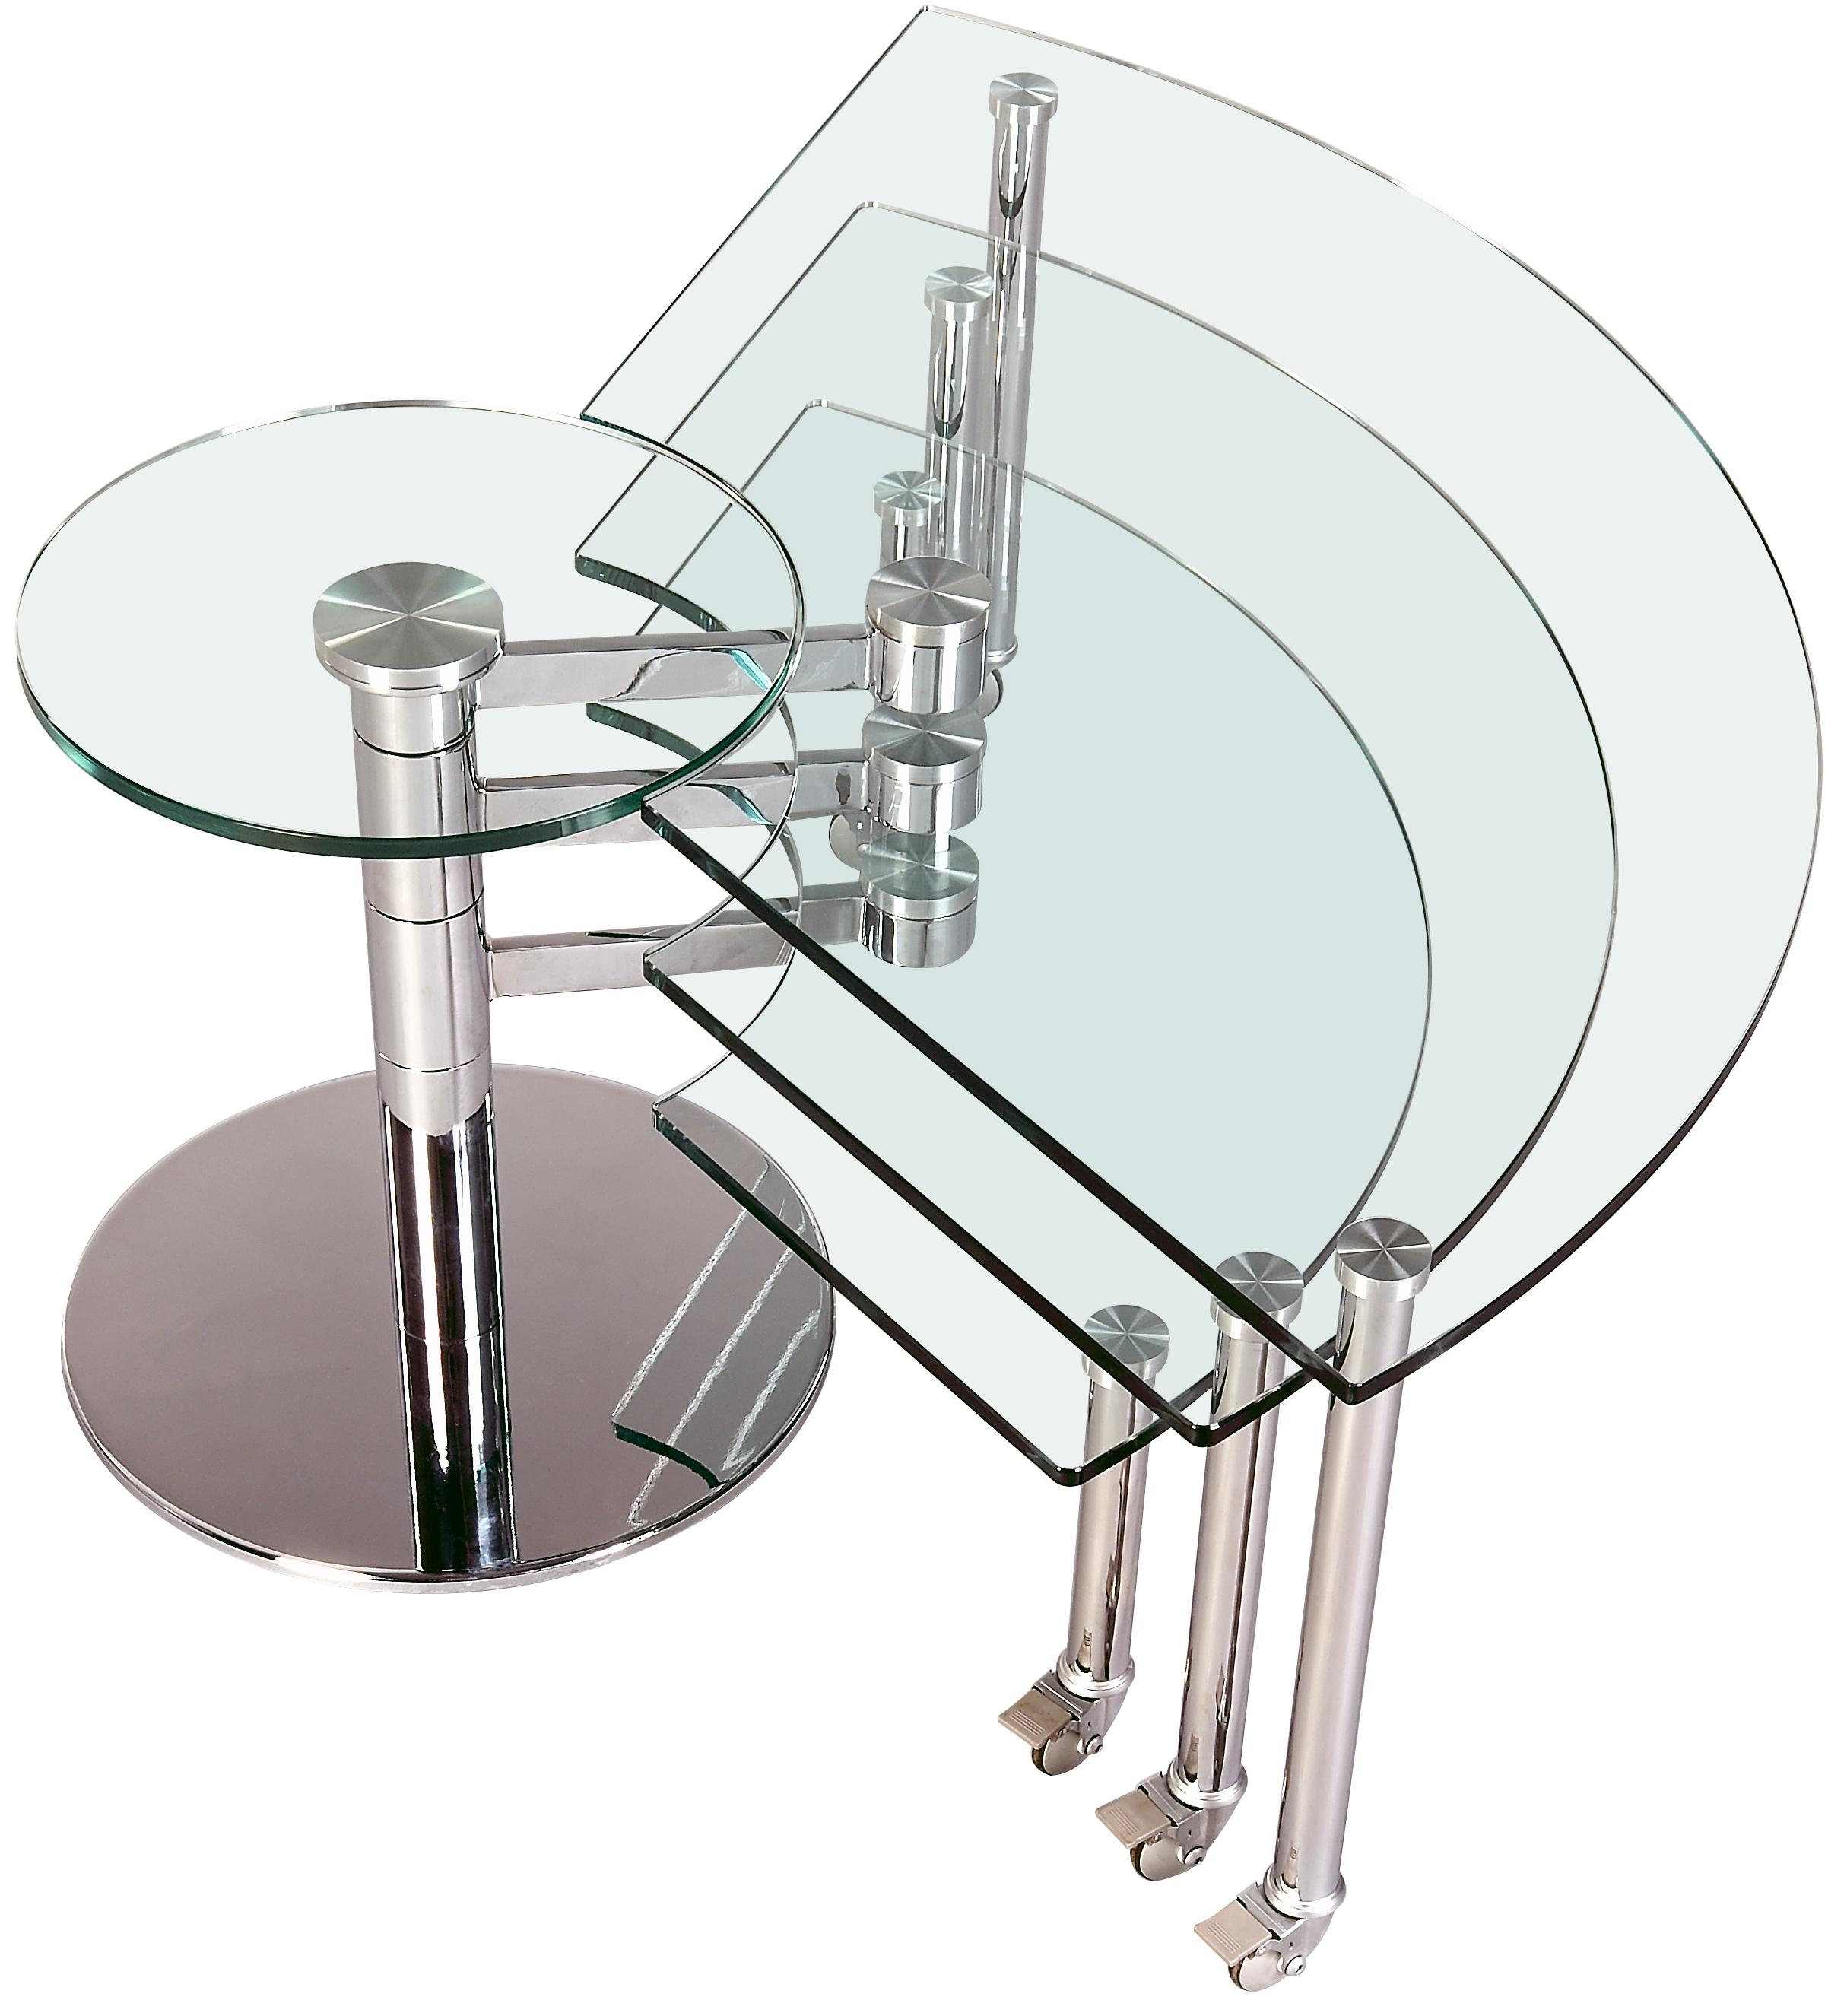 Three Level Motion Cocktail Table